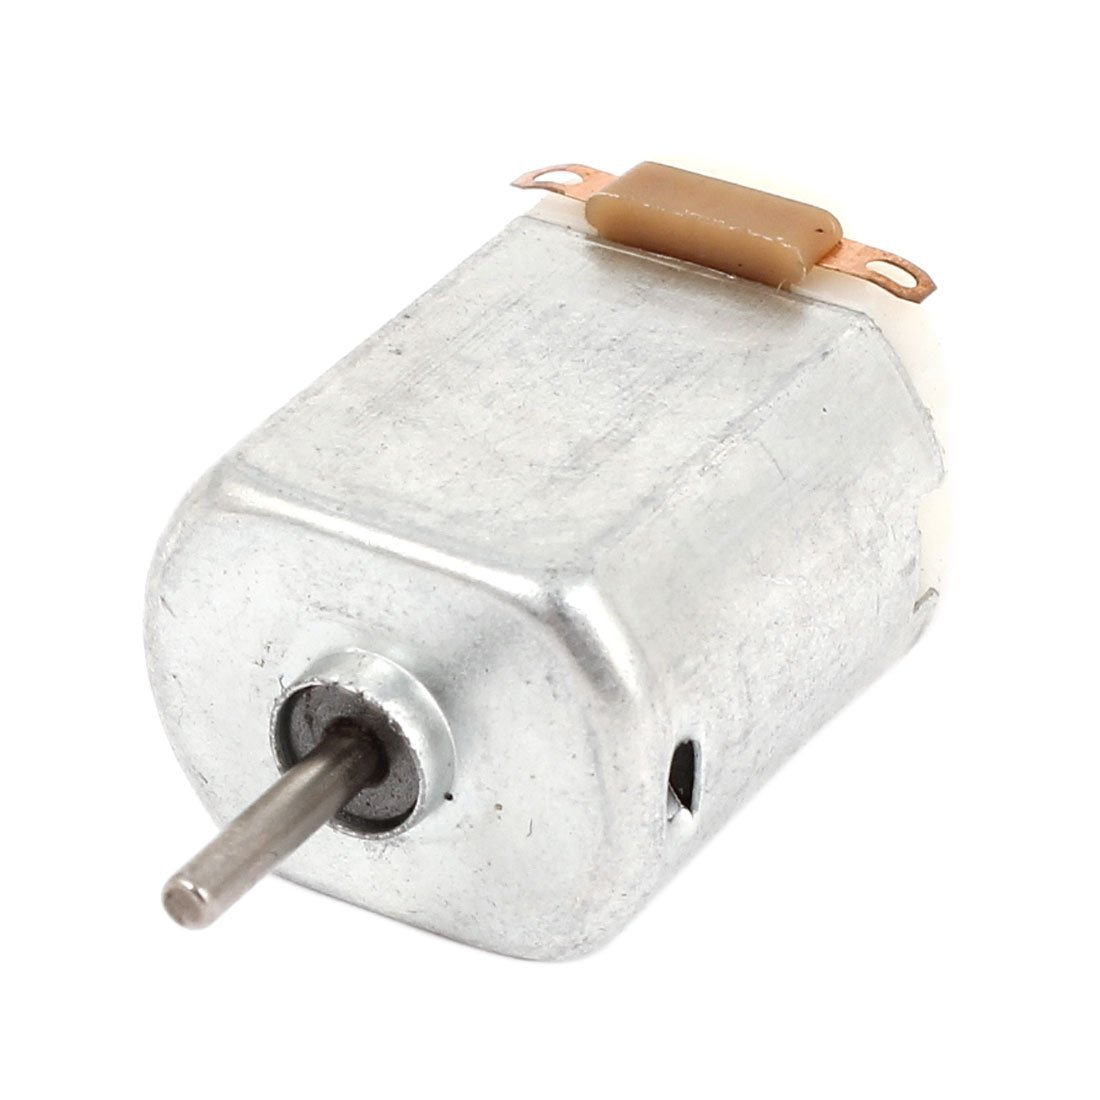 Dc 1.5v Diy Toy Hobby Quell Summer Thirst 3v Mini Electric Motor 18000 Rpm